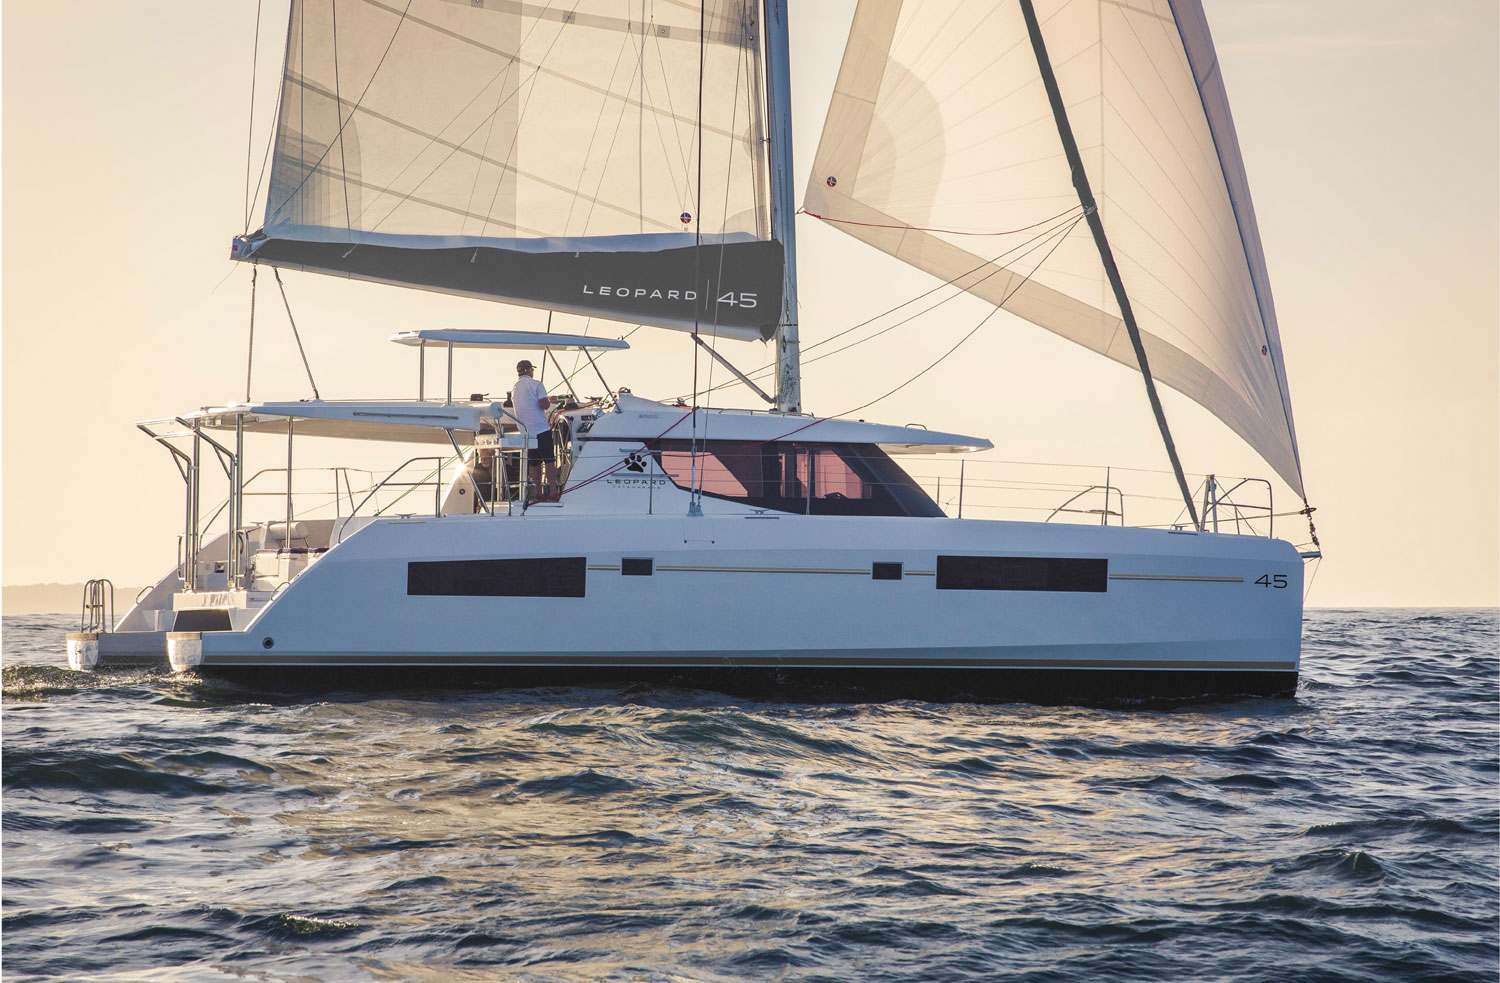 Leopard 45 Catamaran Hull #1